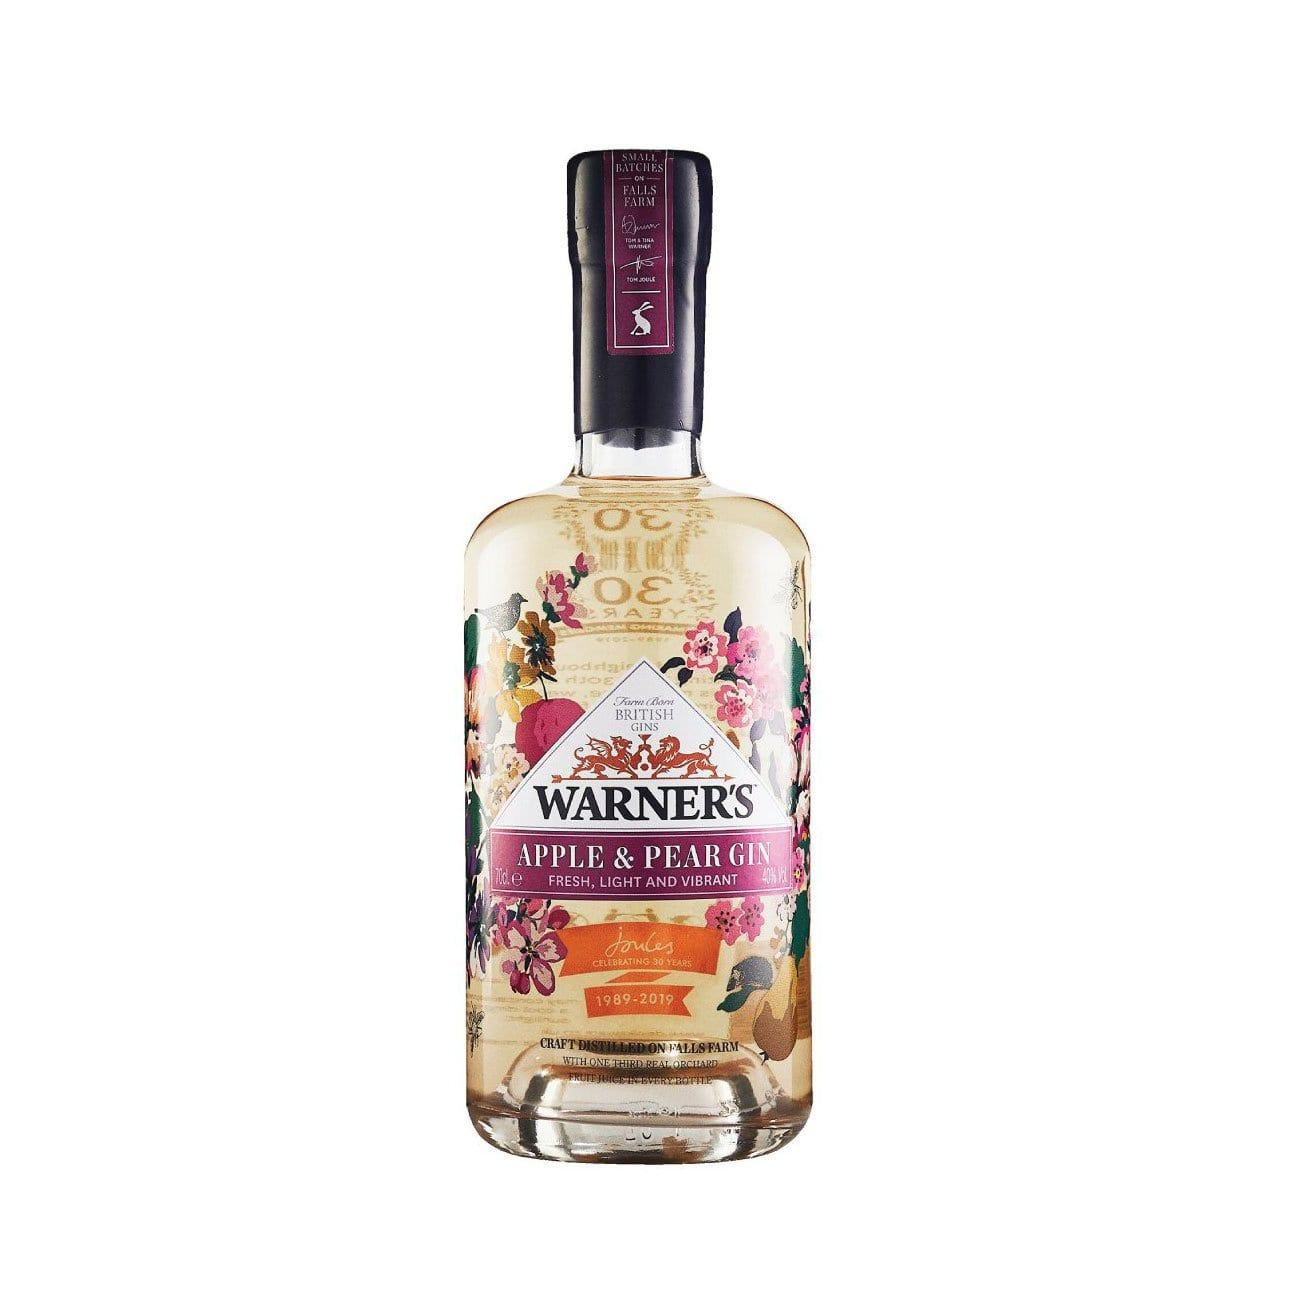 Warner's Apple and Pear Gin Bottle celebrating 30th Anniversary of Joules